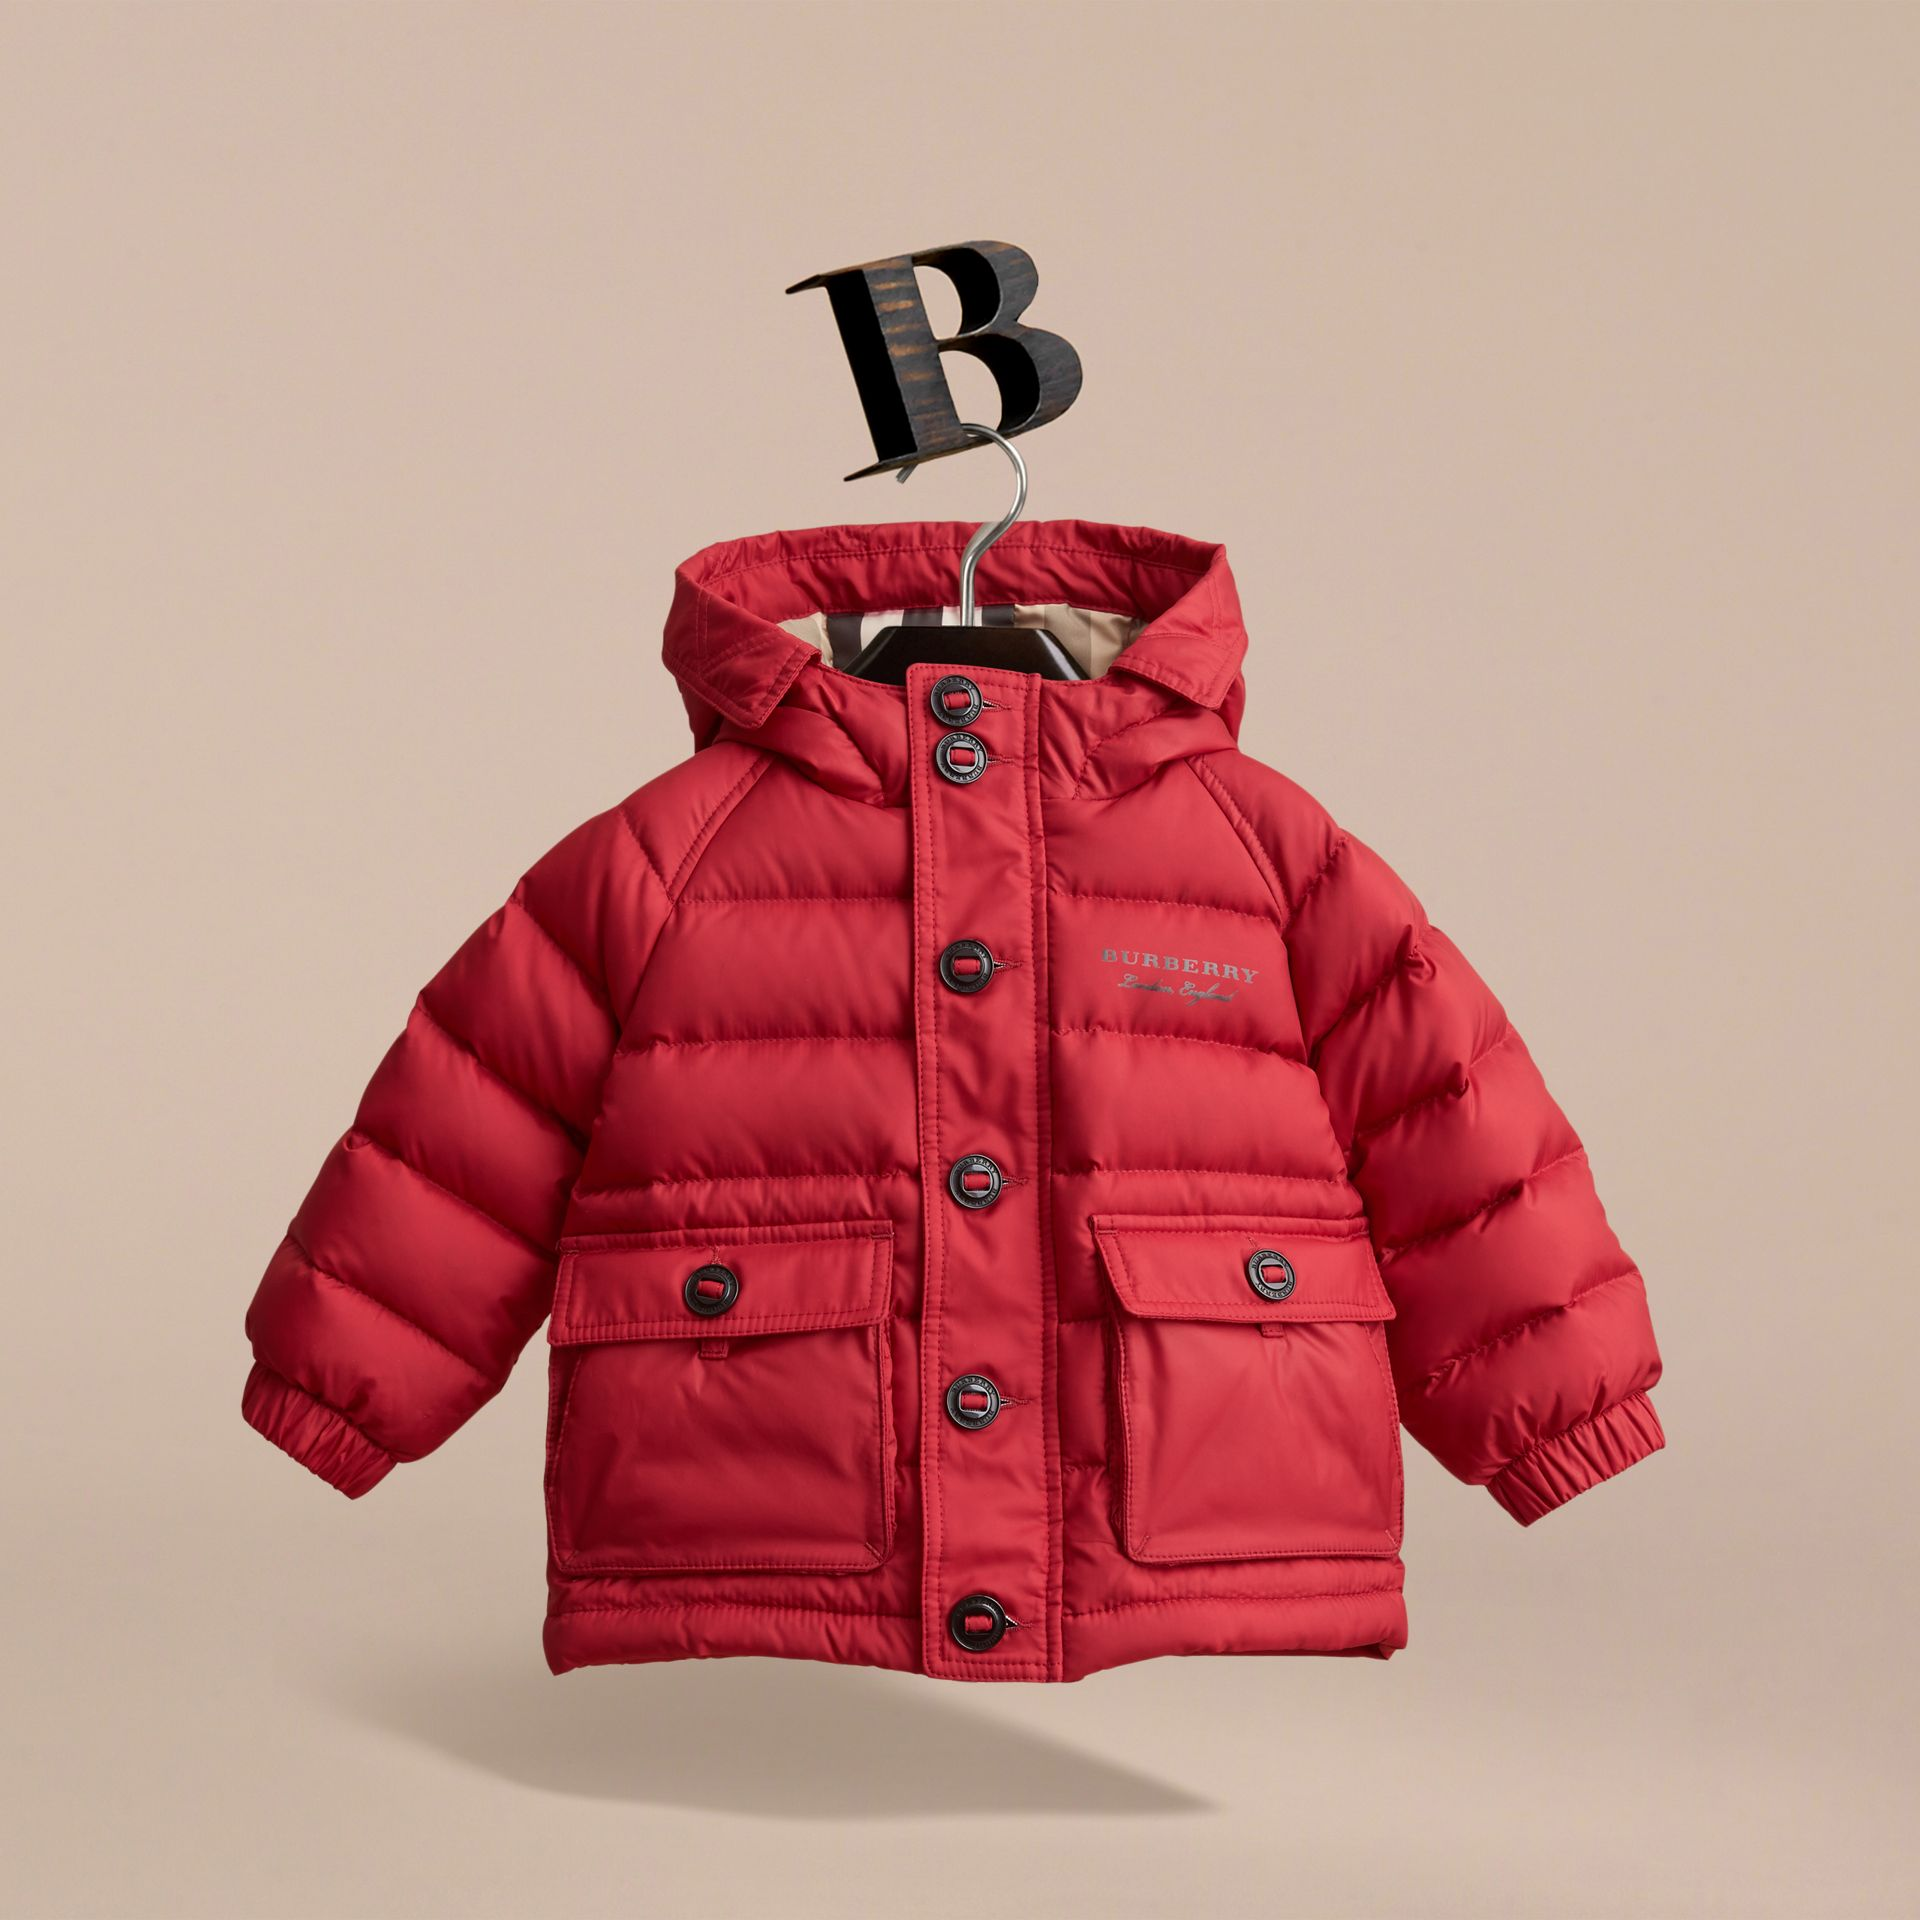 Shower-resistant Hooded Puffer Jacket in Parade Red | Burberry - gallery image 3